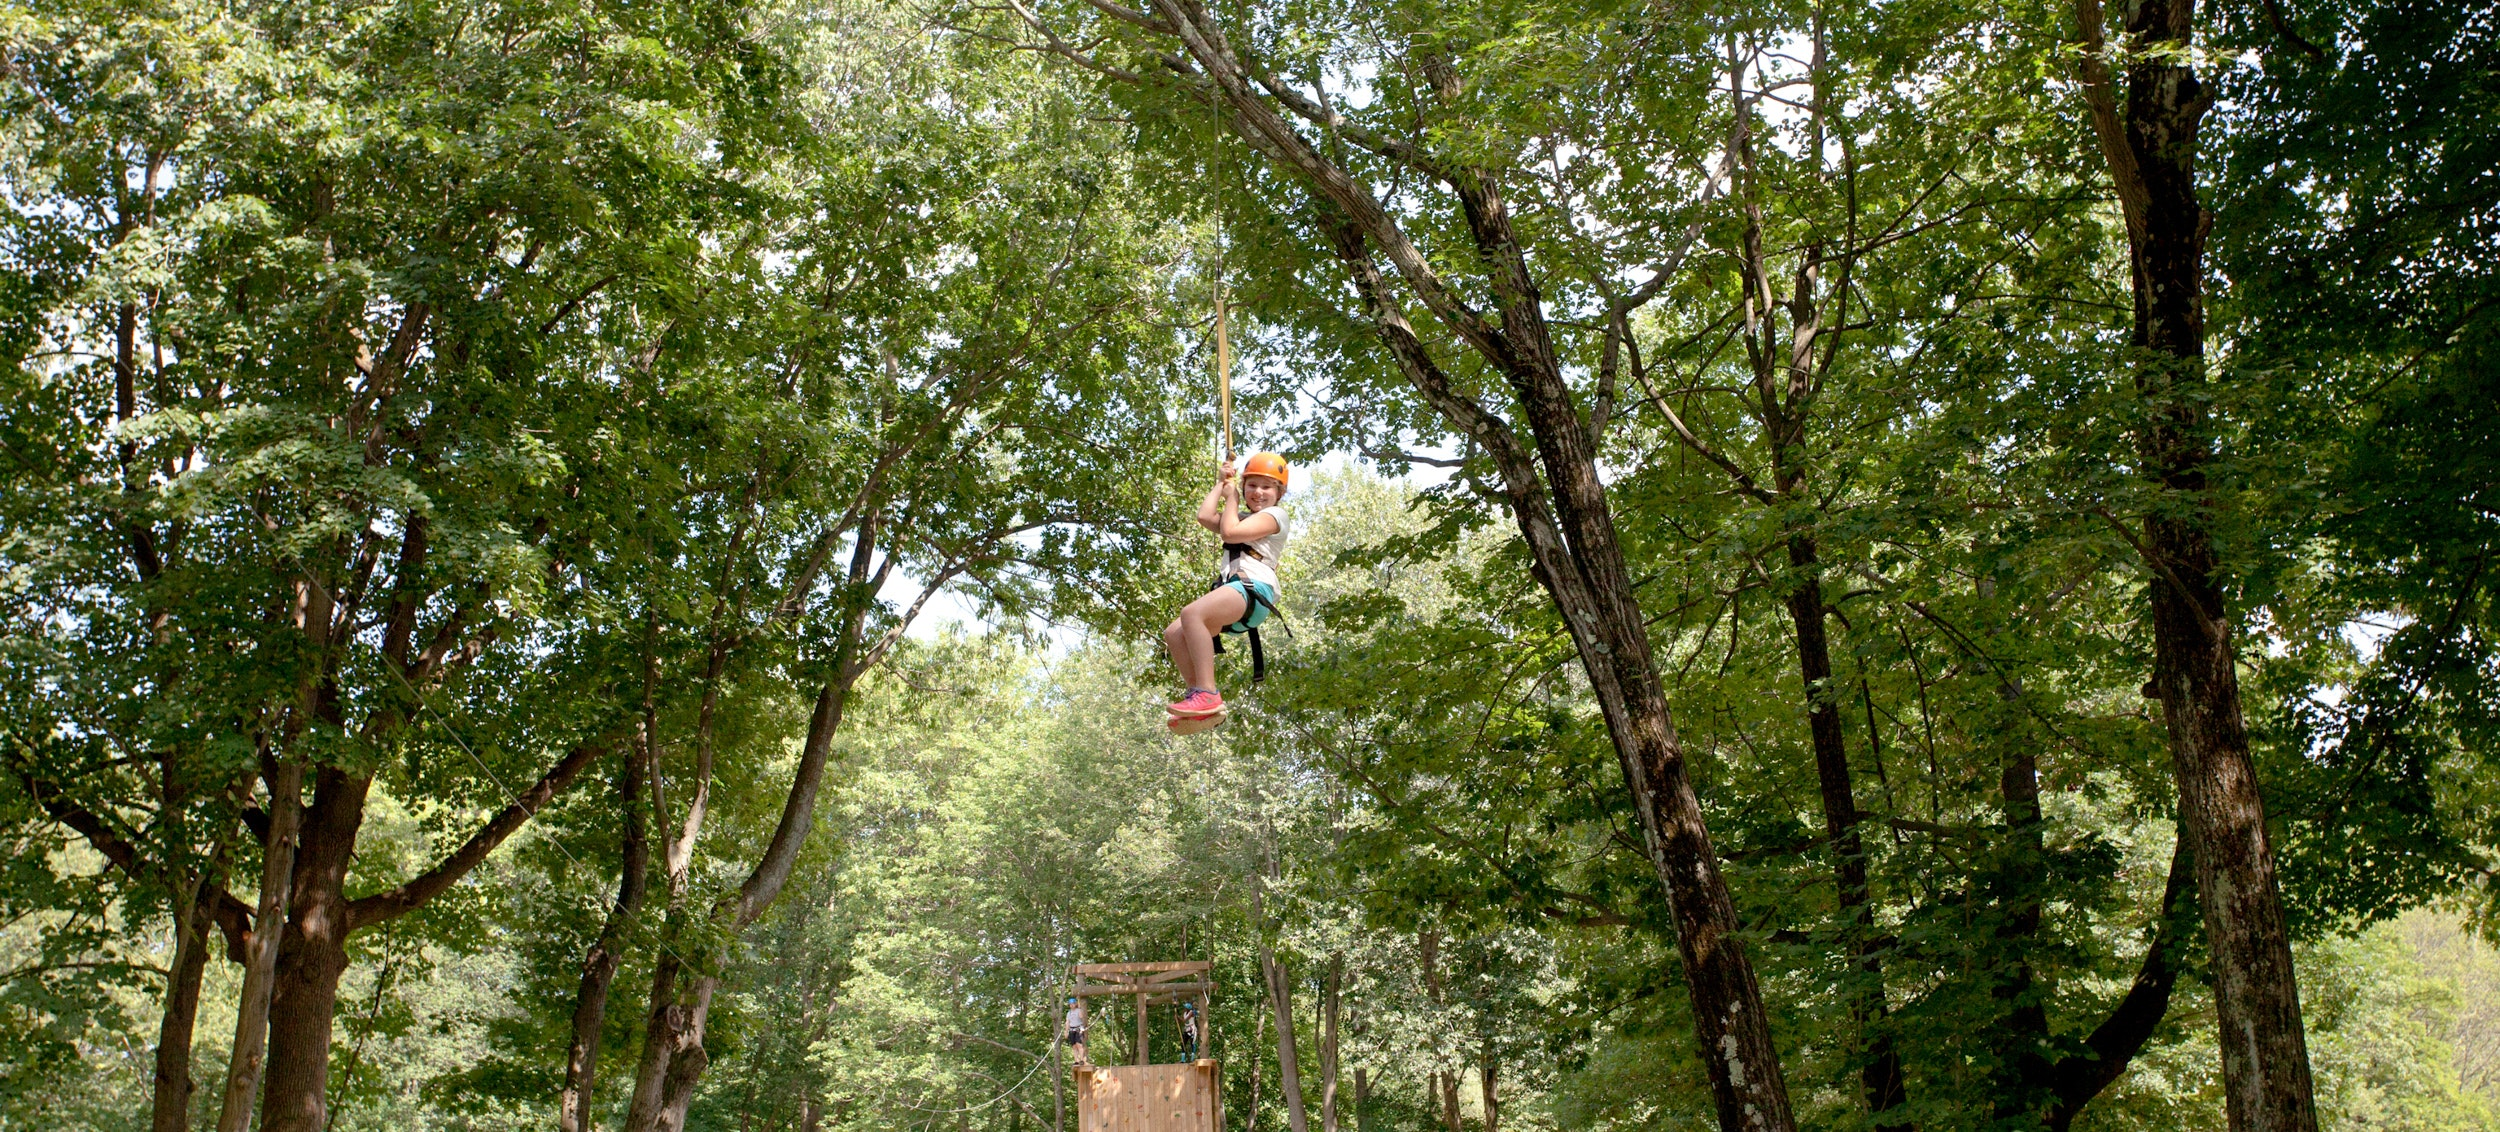 Deerkill day camp zip line.jpg?ixlib=rails 2.1